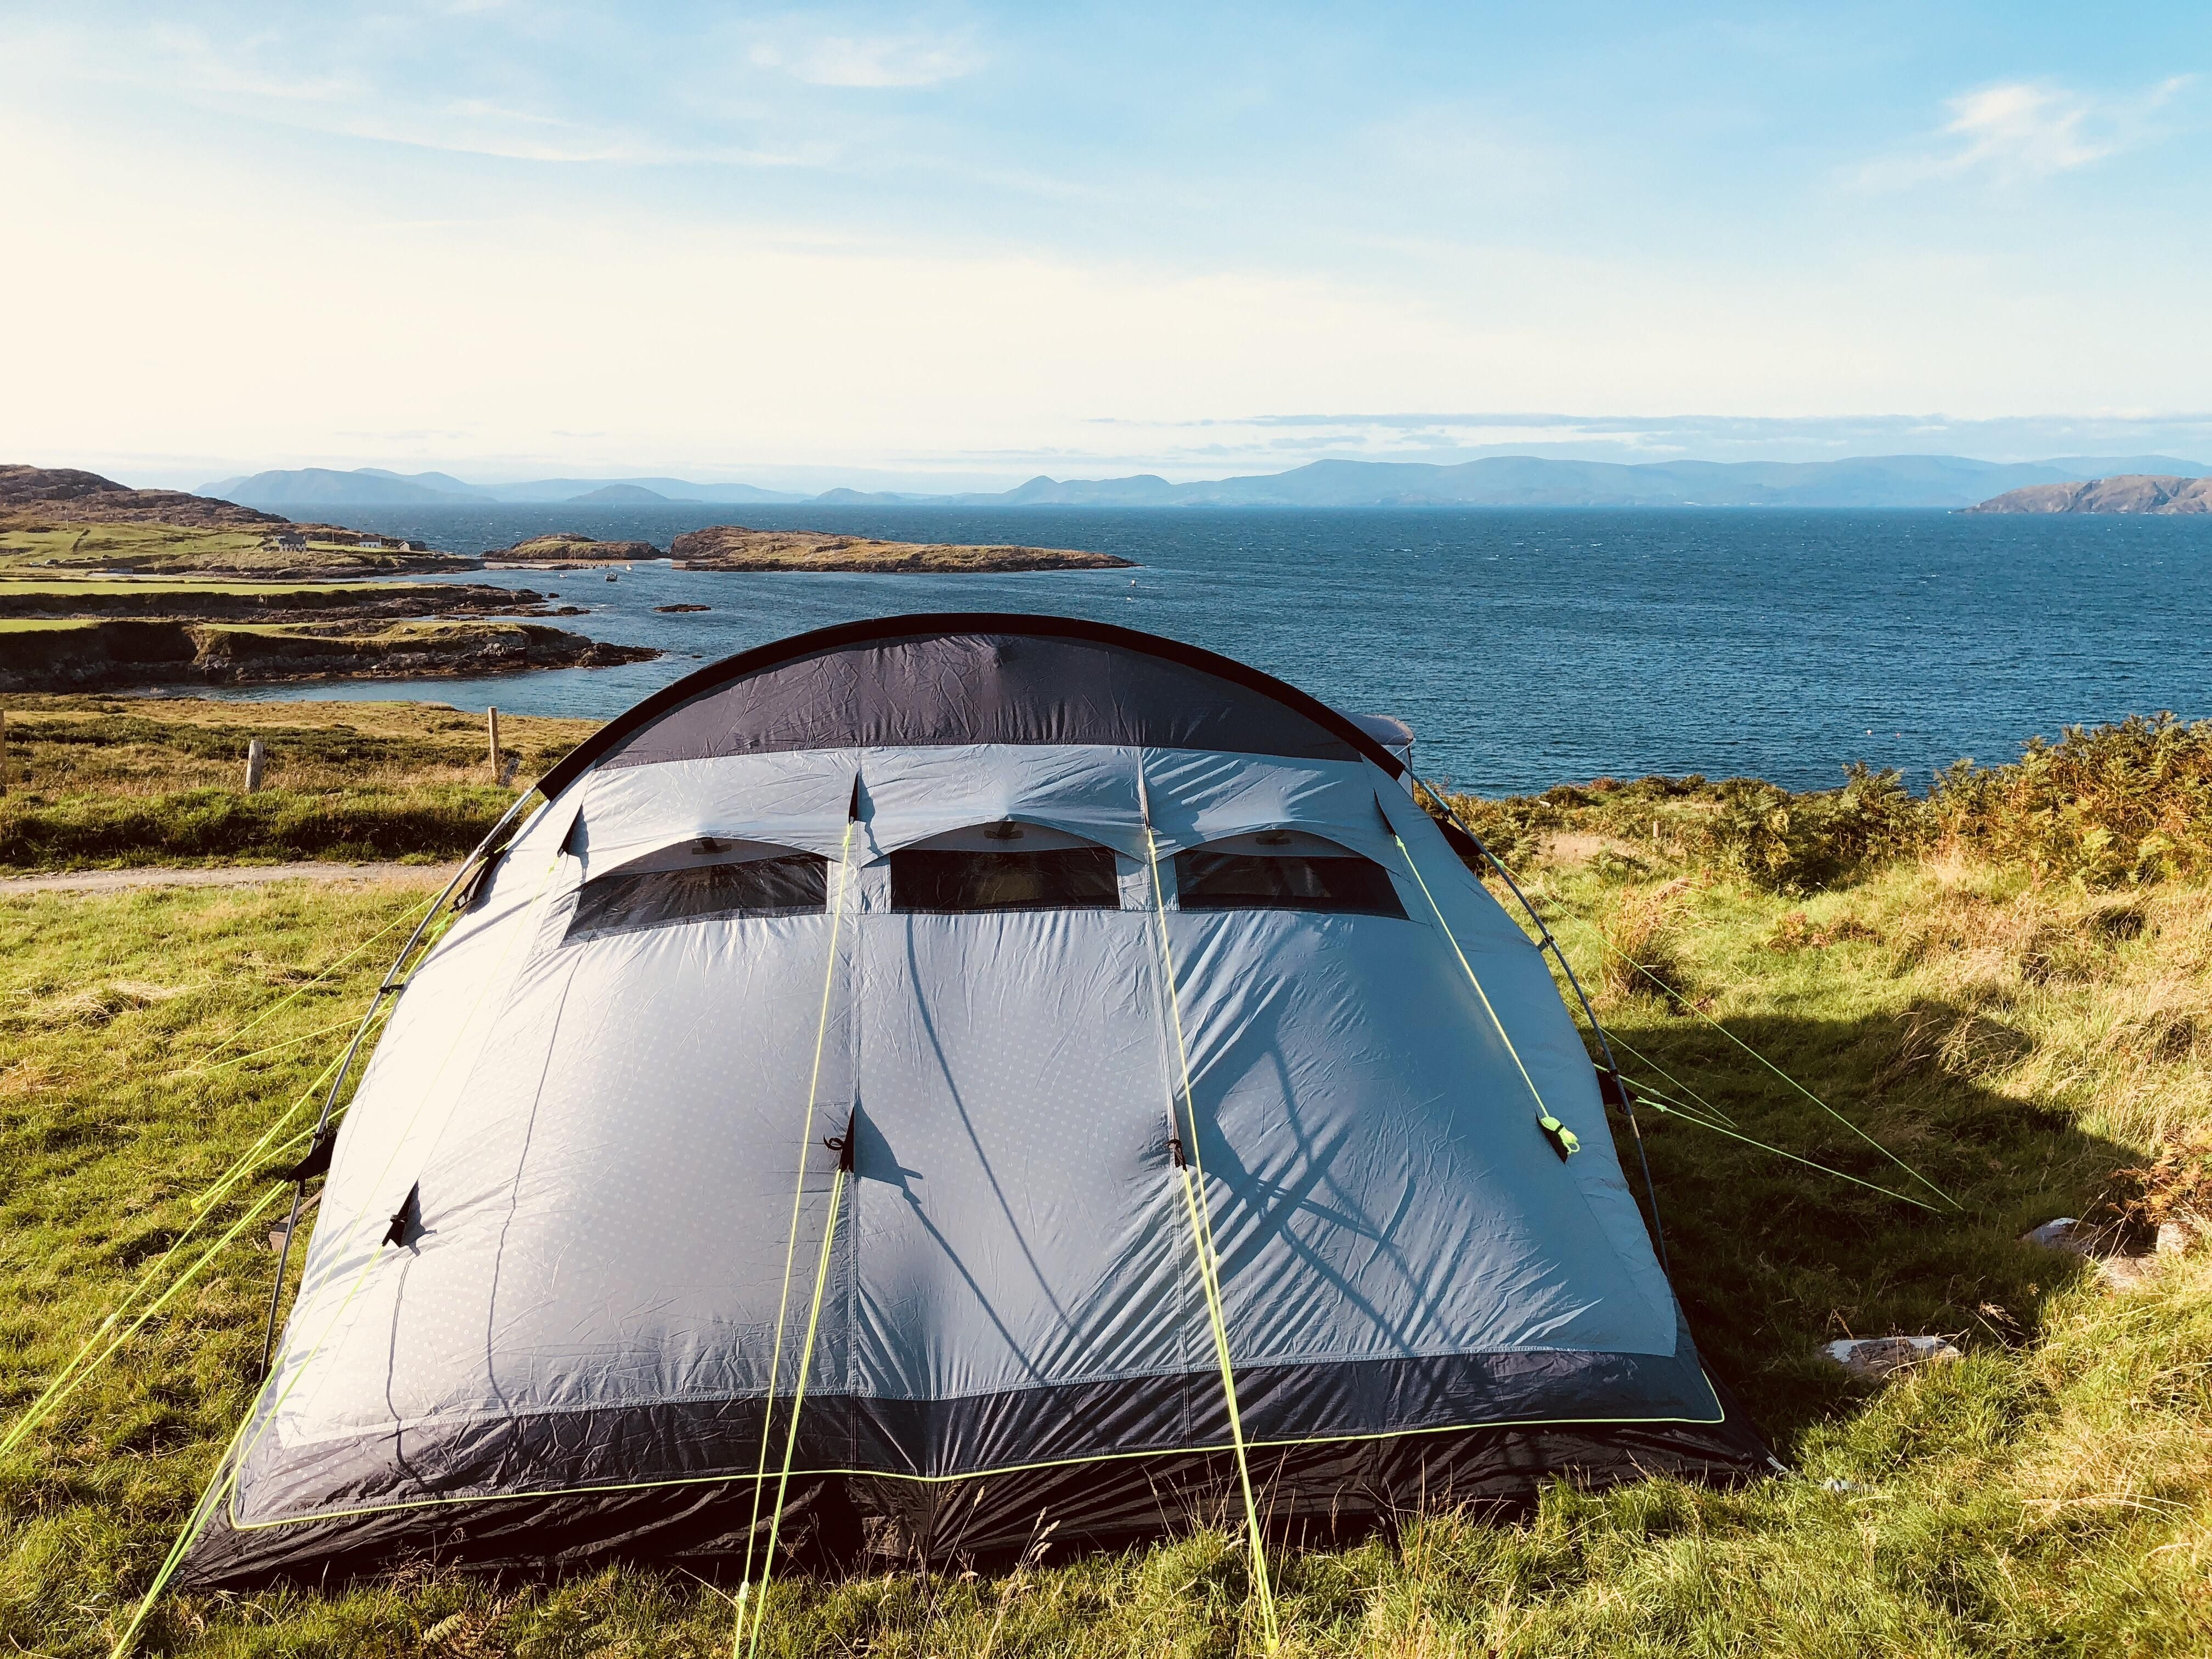 Pitched Our Tent On The Beara Peninsula Near Bantry Co Cork Ireland Stunning Views That Didnt Cost Us A Buck Save For Camping And Hiking Tent Stunning View